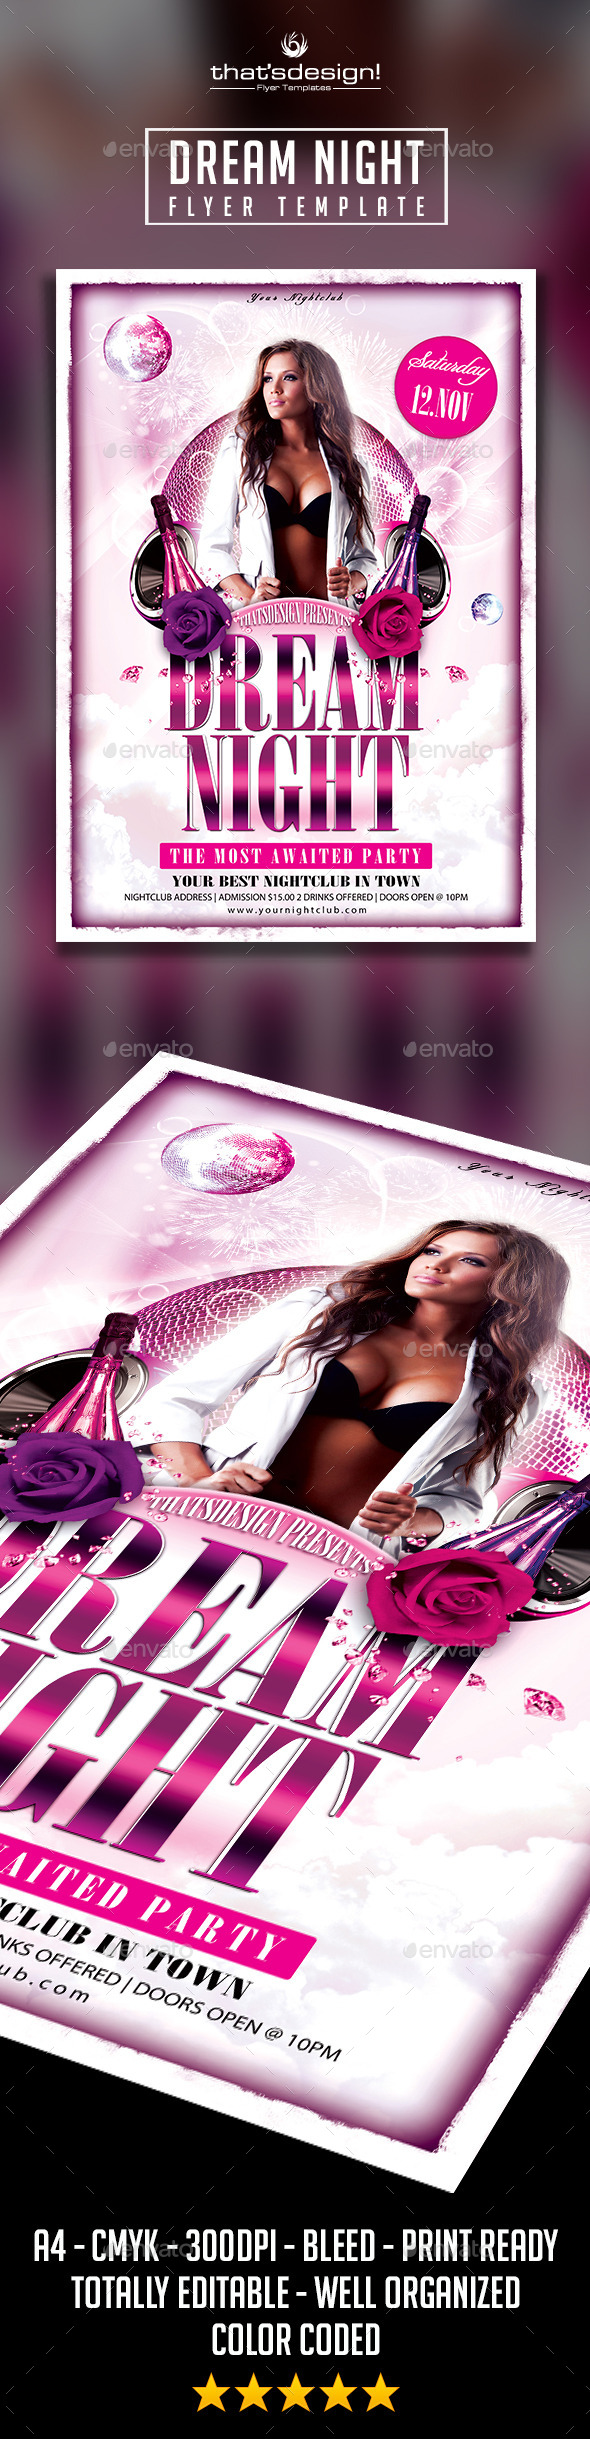 Dream Night Flyer Template - Clubs & Parties Events